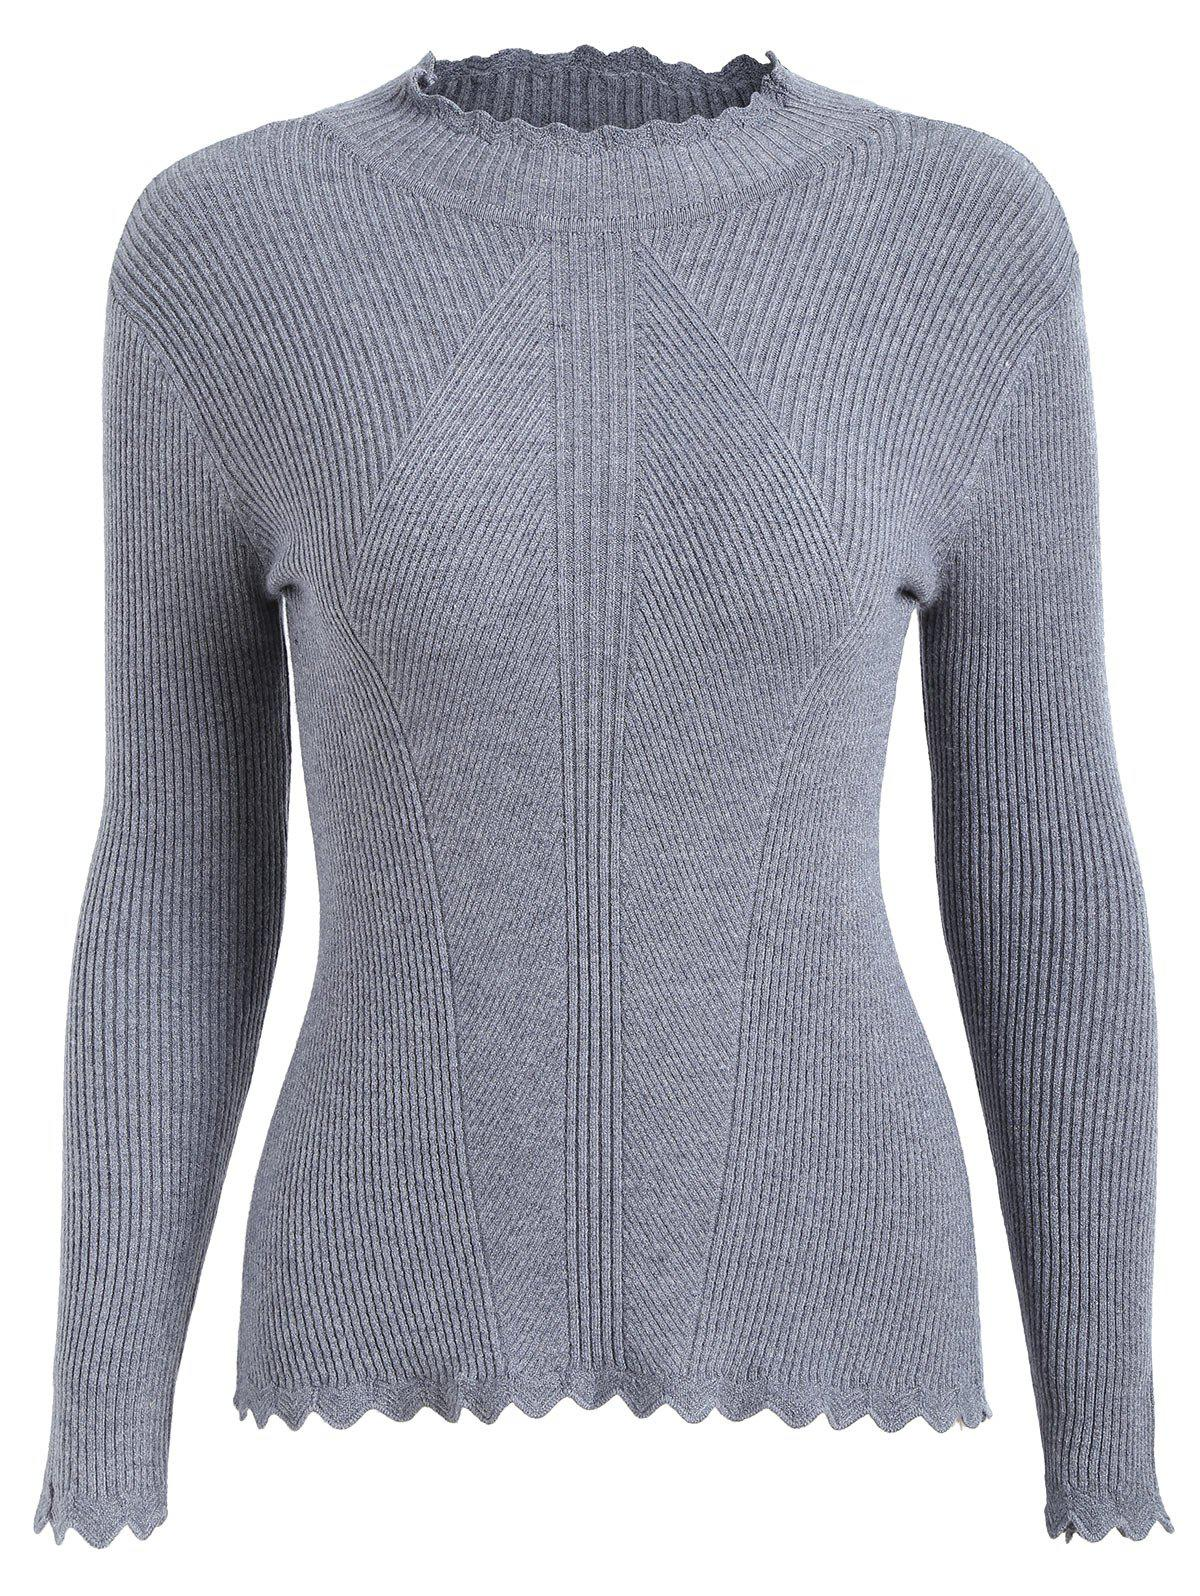 Plus Size High Neck Ribbed Knitwear 225913904